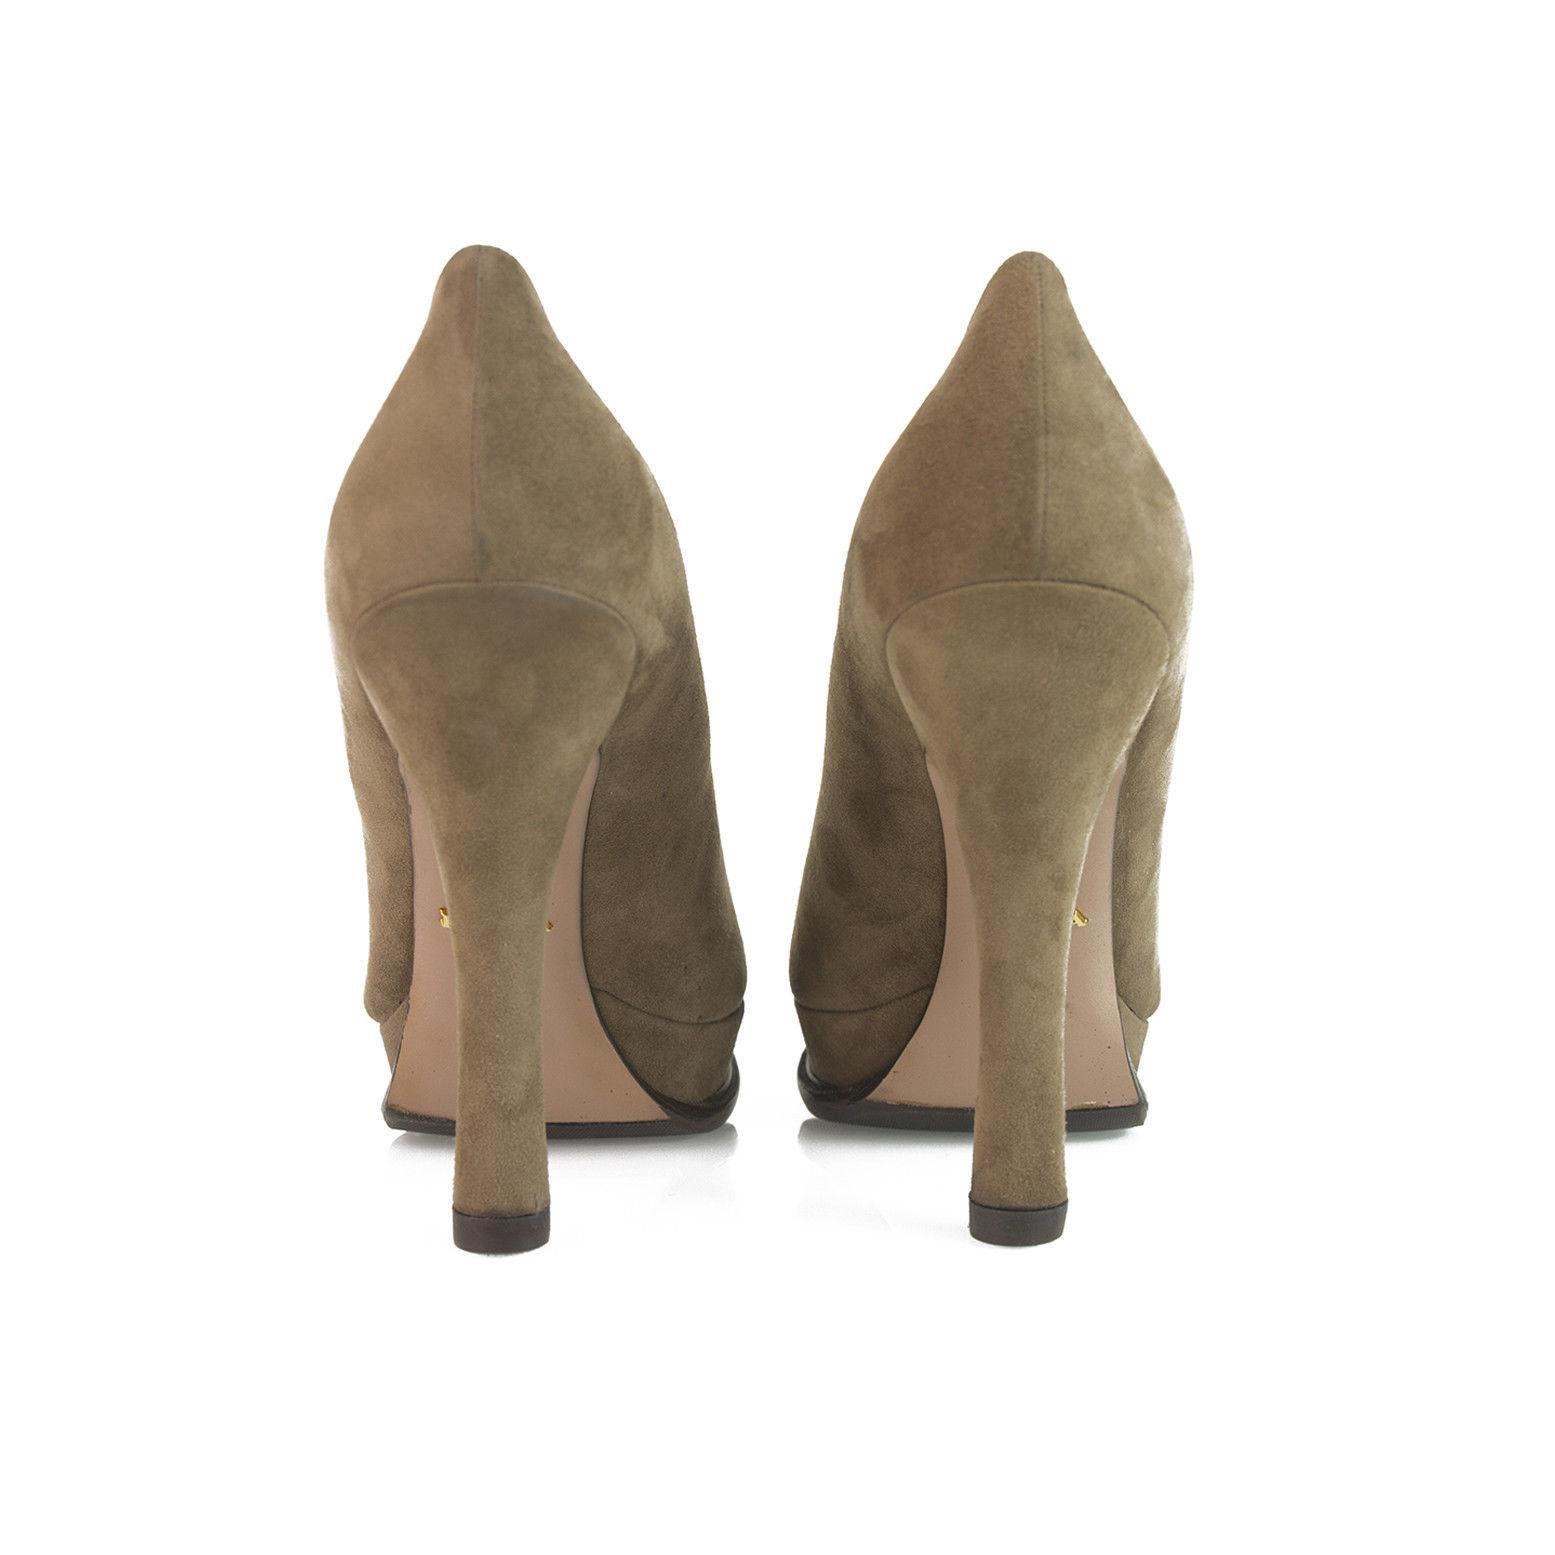 Prada Taupe Brown Suede Leather Classic Pumps Round Toe Slim Heel Platform sz 40 image 7